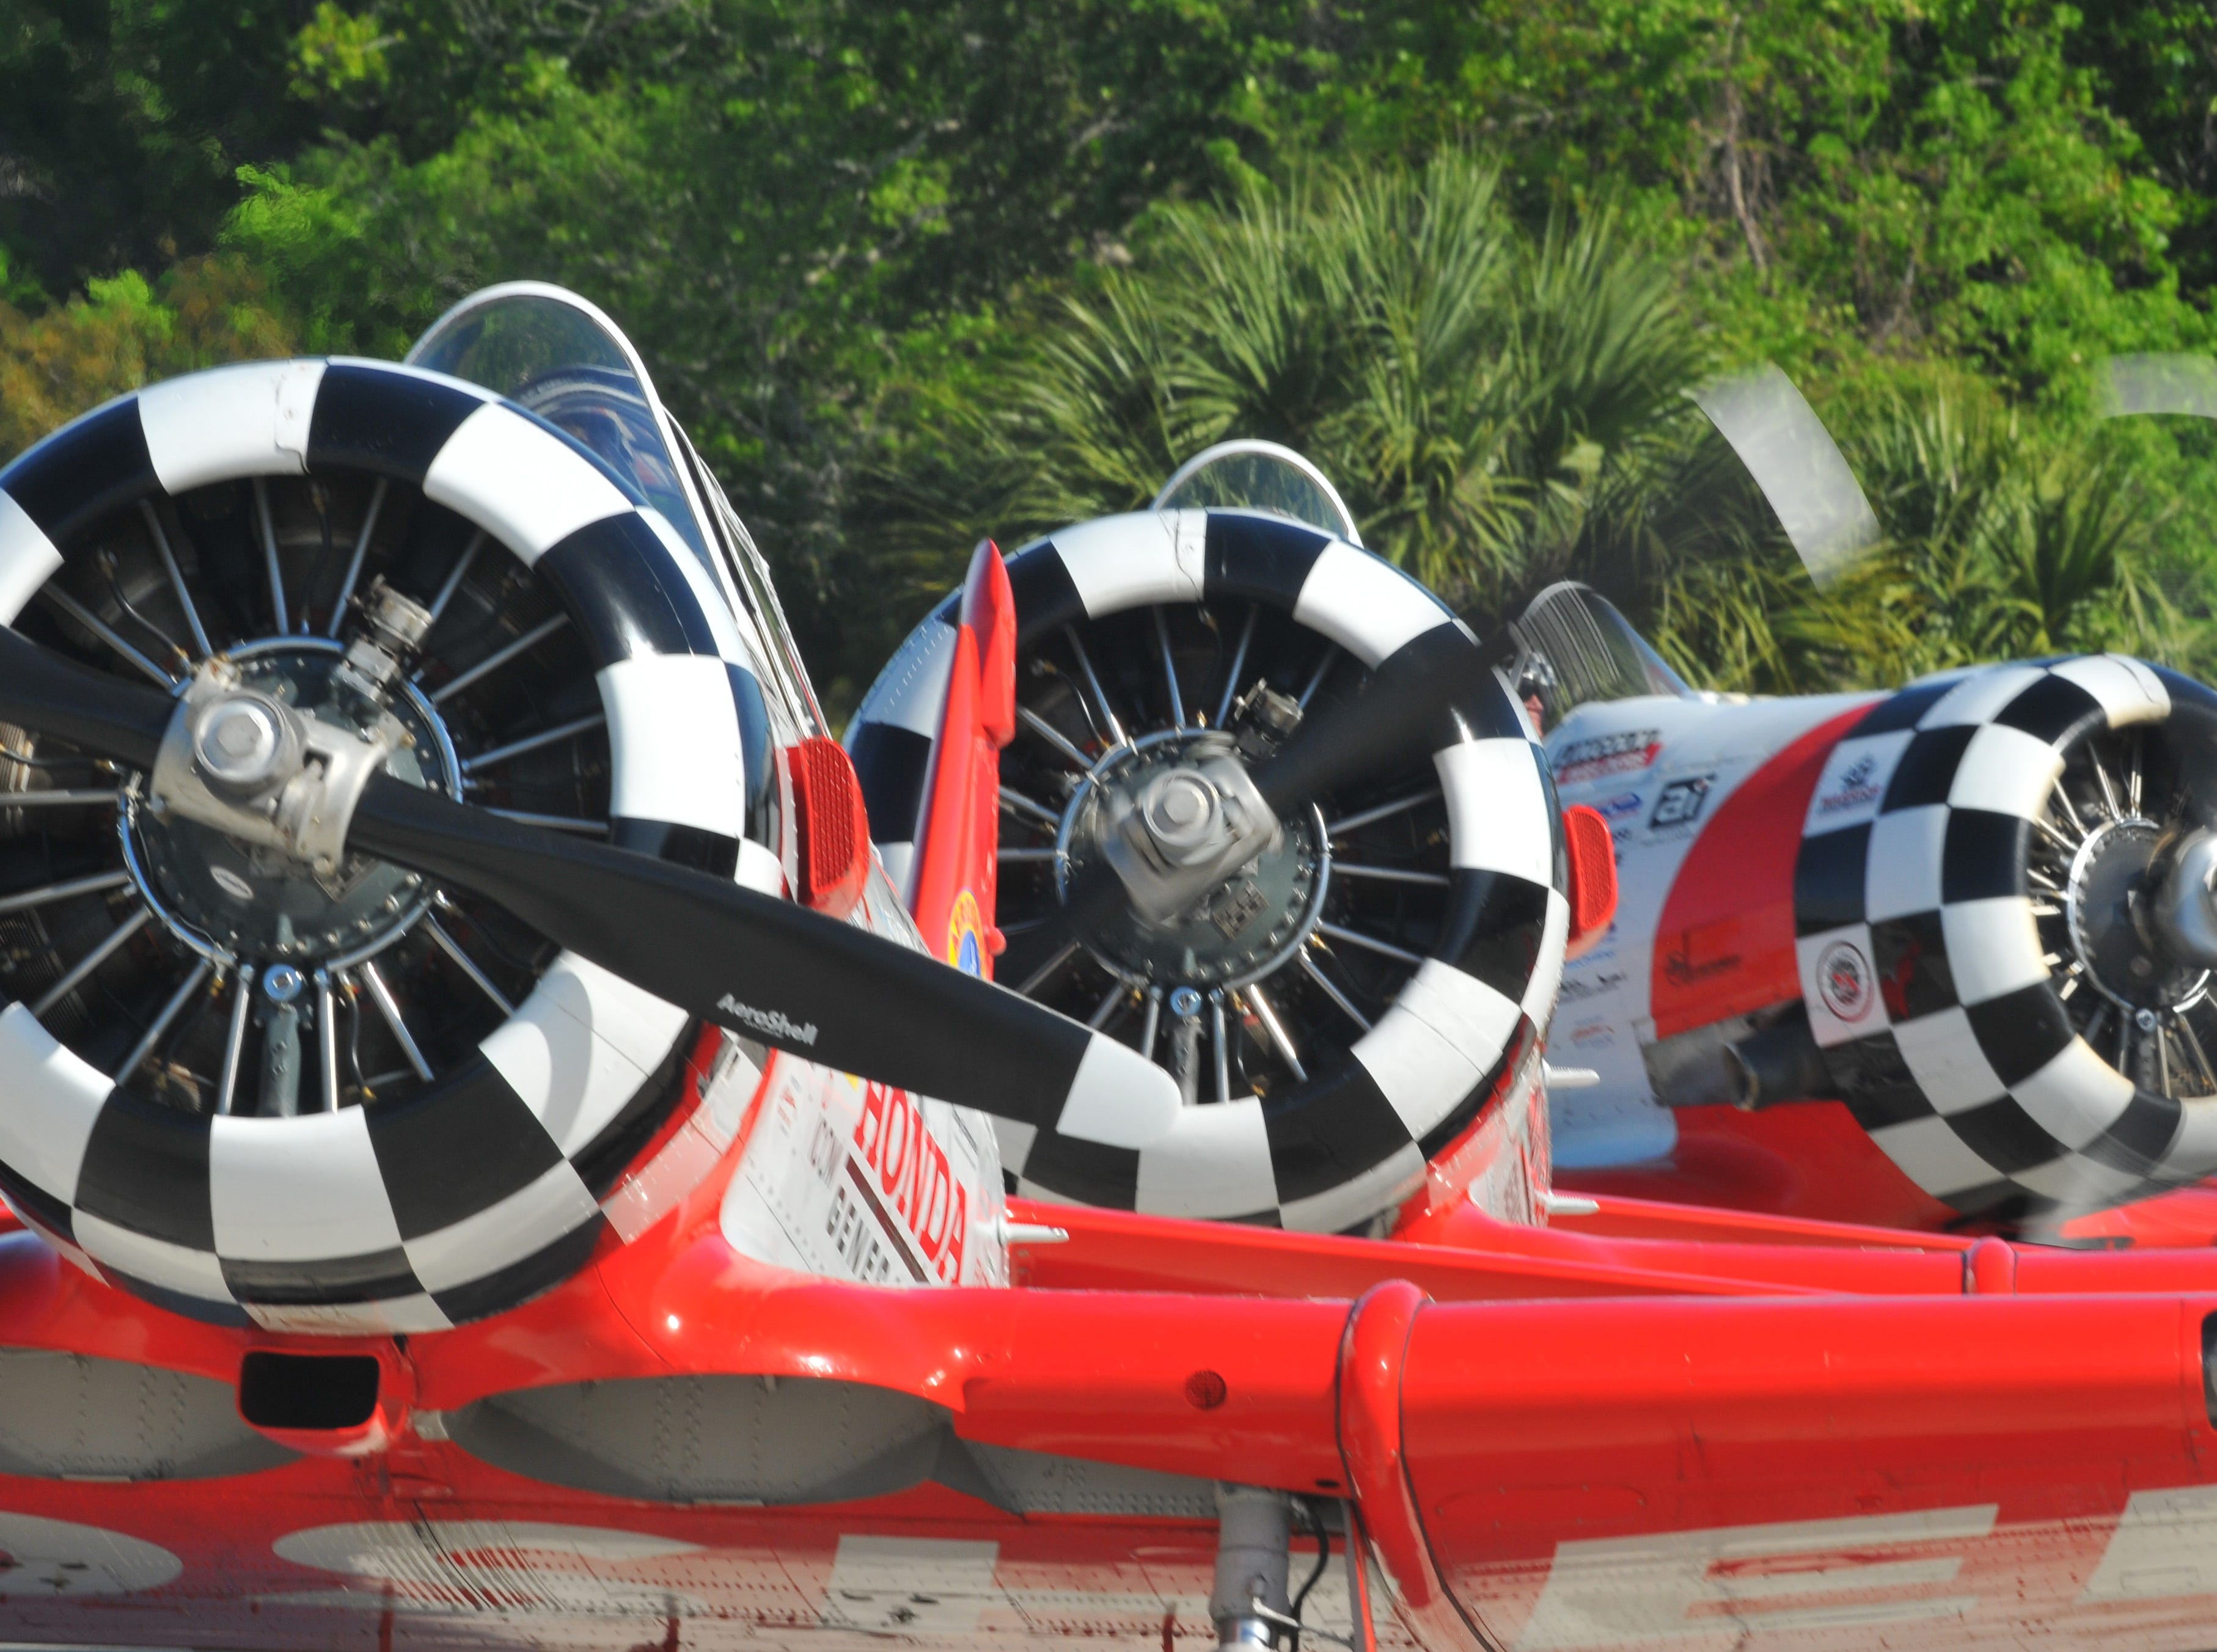 Three of the Aeroshell Aerobatic Team prepare for take off. The 2019 Space Coast Warbird Air Show held their media day Thursday, promoting the Air Show that runs Friday, Saturday and Sunday at Space Coast Regional Airport in Titusville, with a Friday afternoon and evening show with fireworks, and shows Saturday and Sunday afternoon.